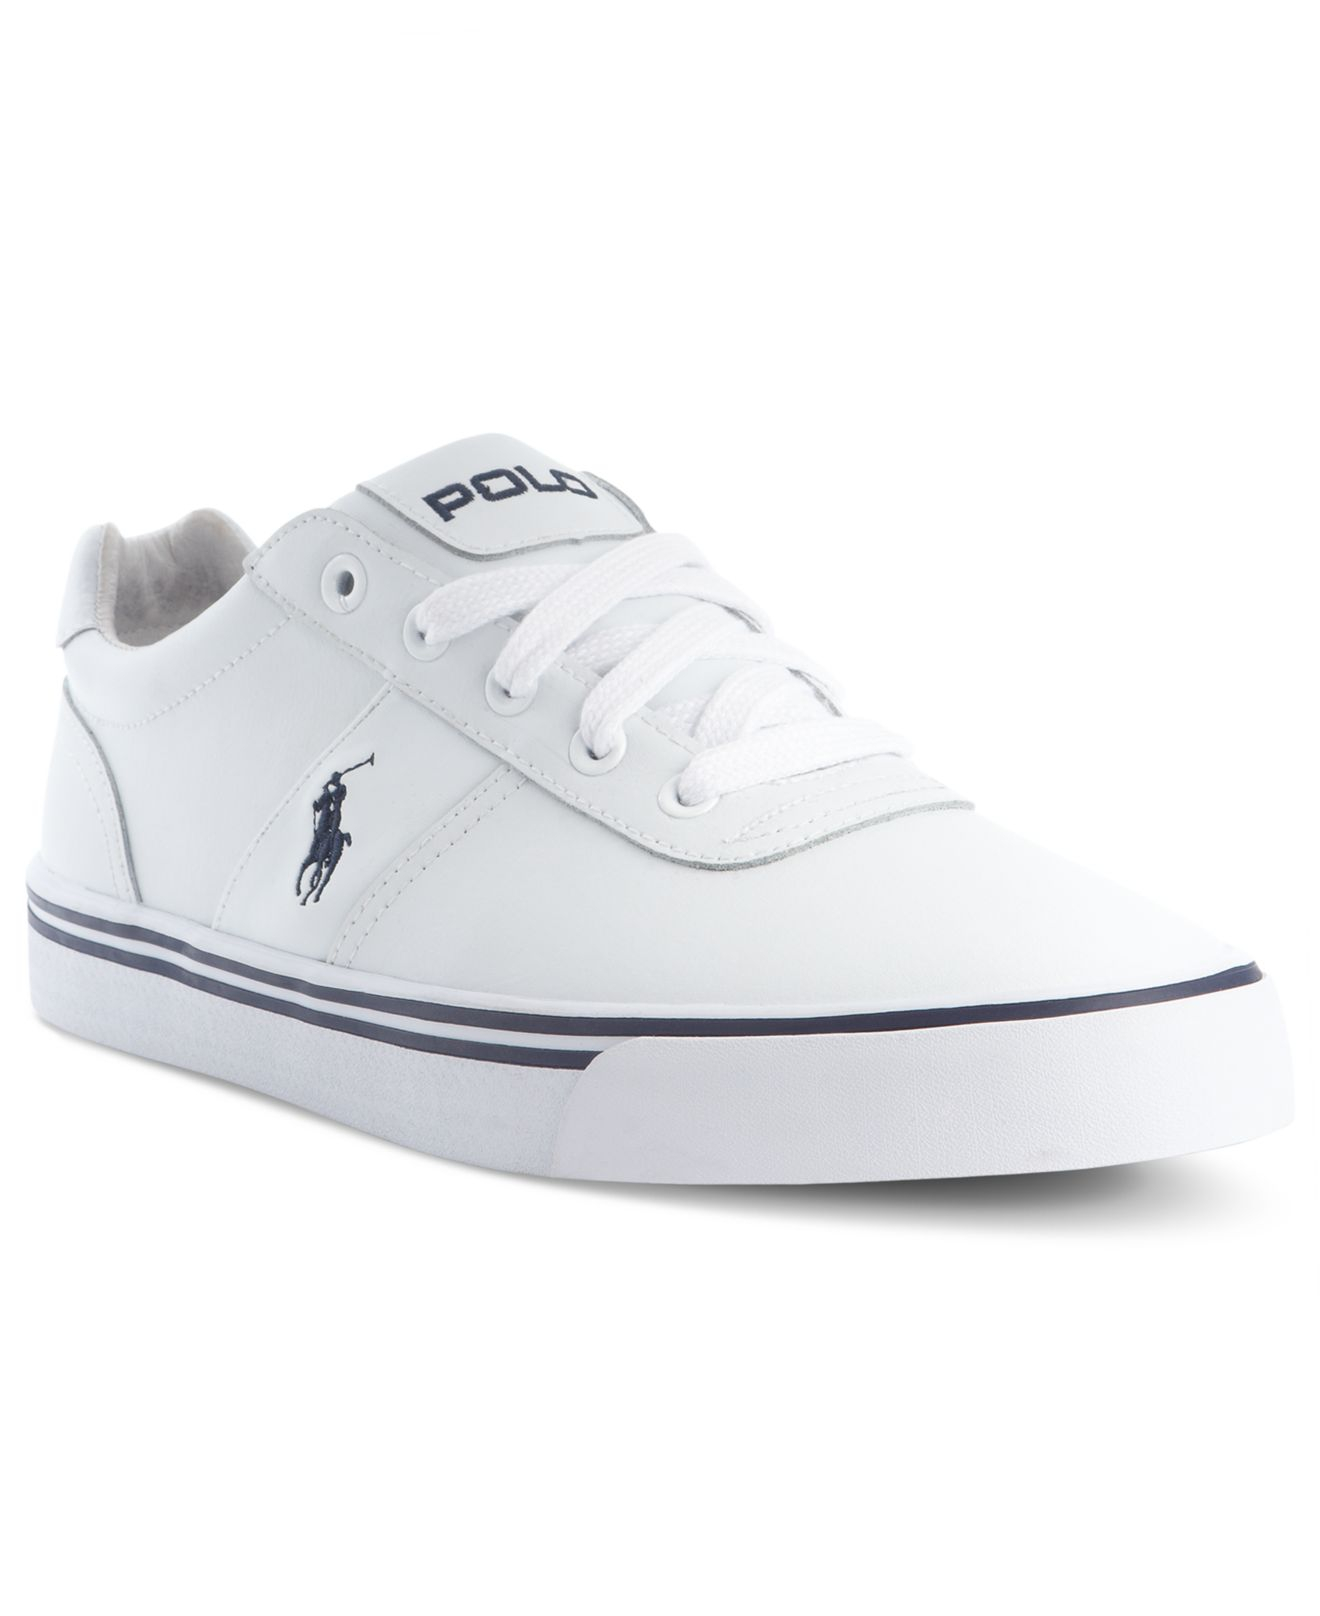 Lyst Polo Ralph Lauren Hanford Leather Sneakers In White